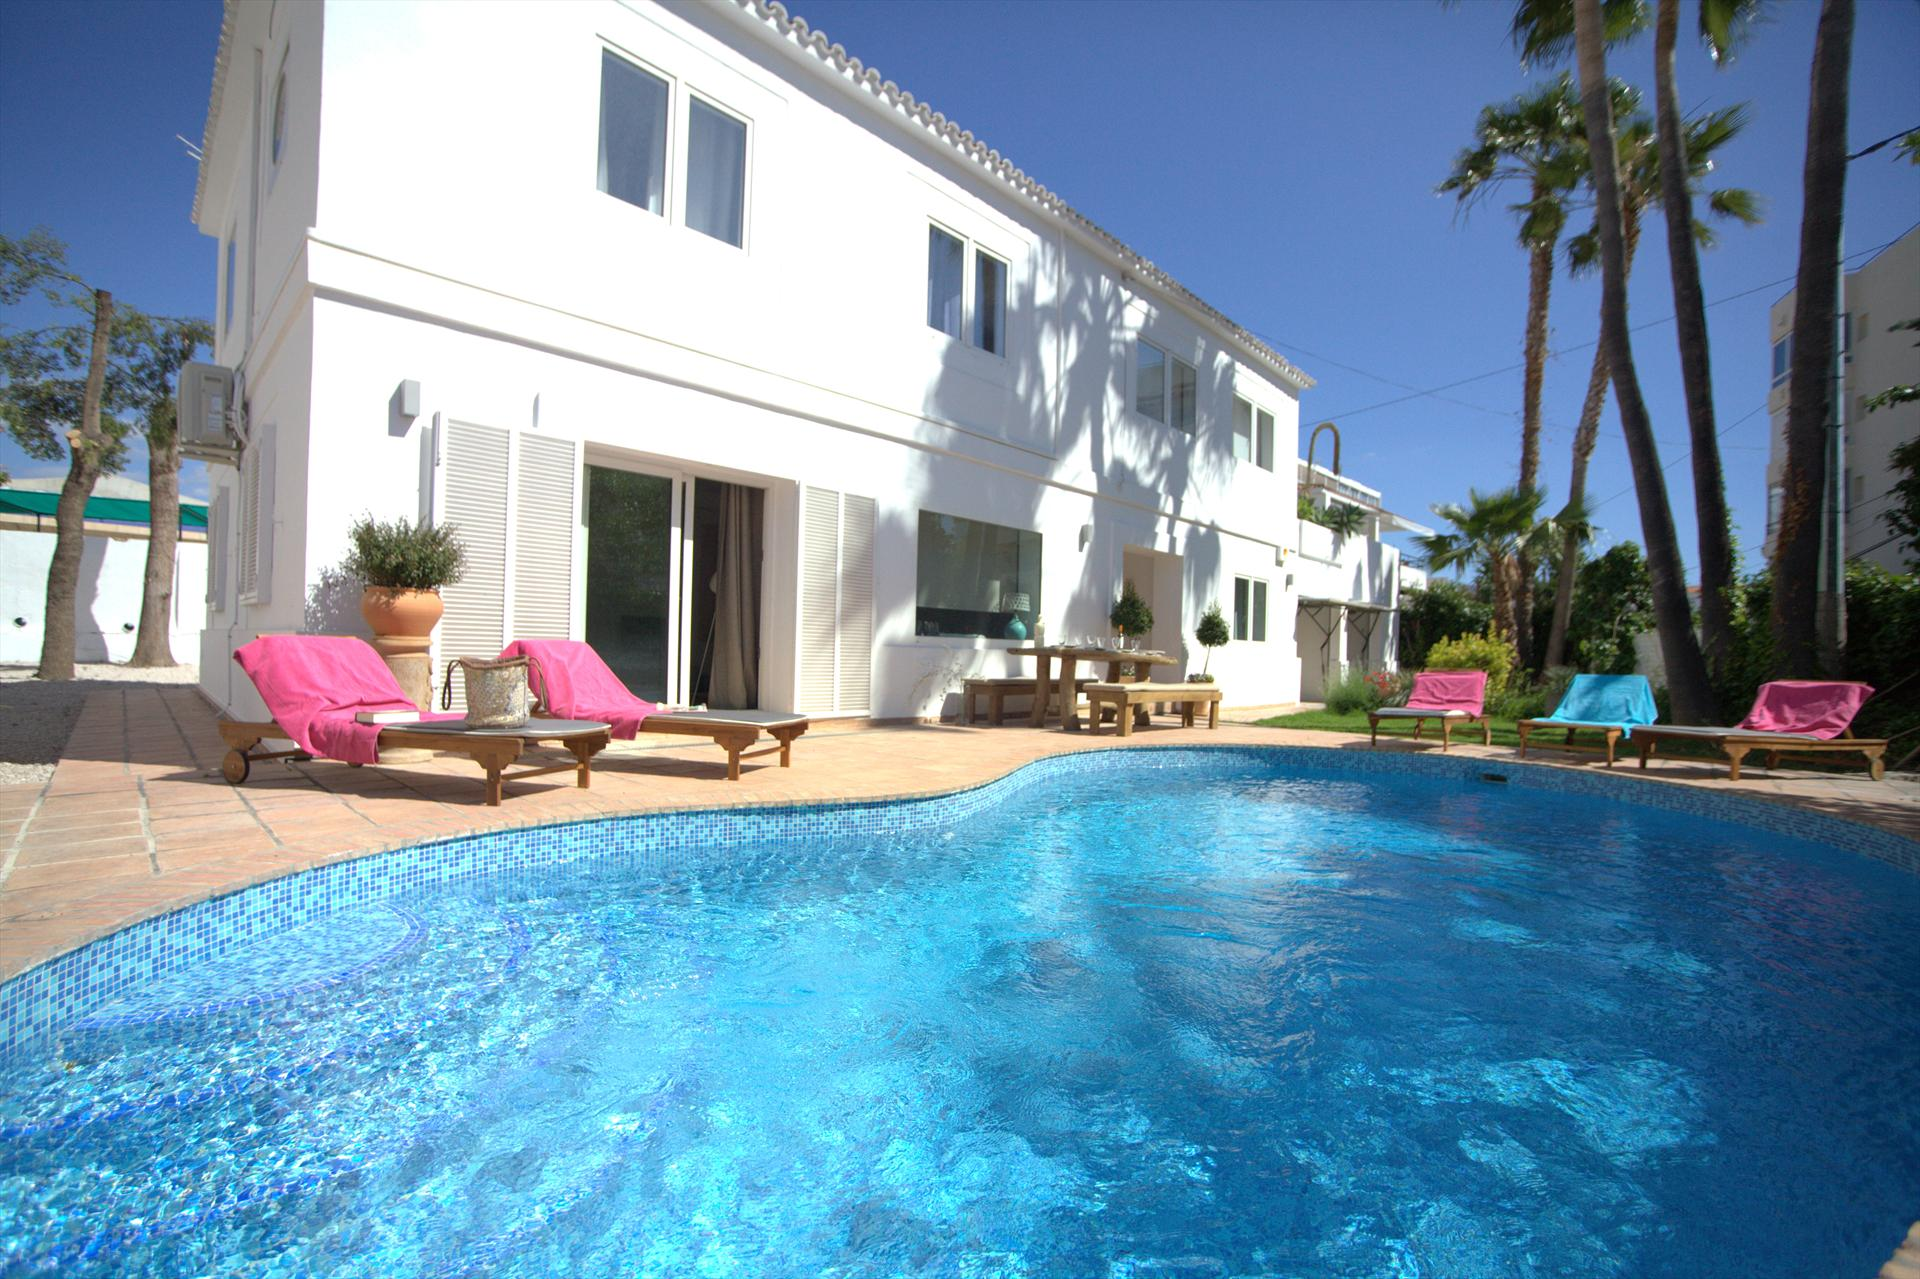 Altea Puerto, Rustic and nice holiday home in Altea, on the Costa Blanca, Spain  with private pool for 8 persons.....